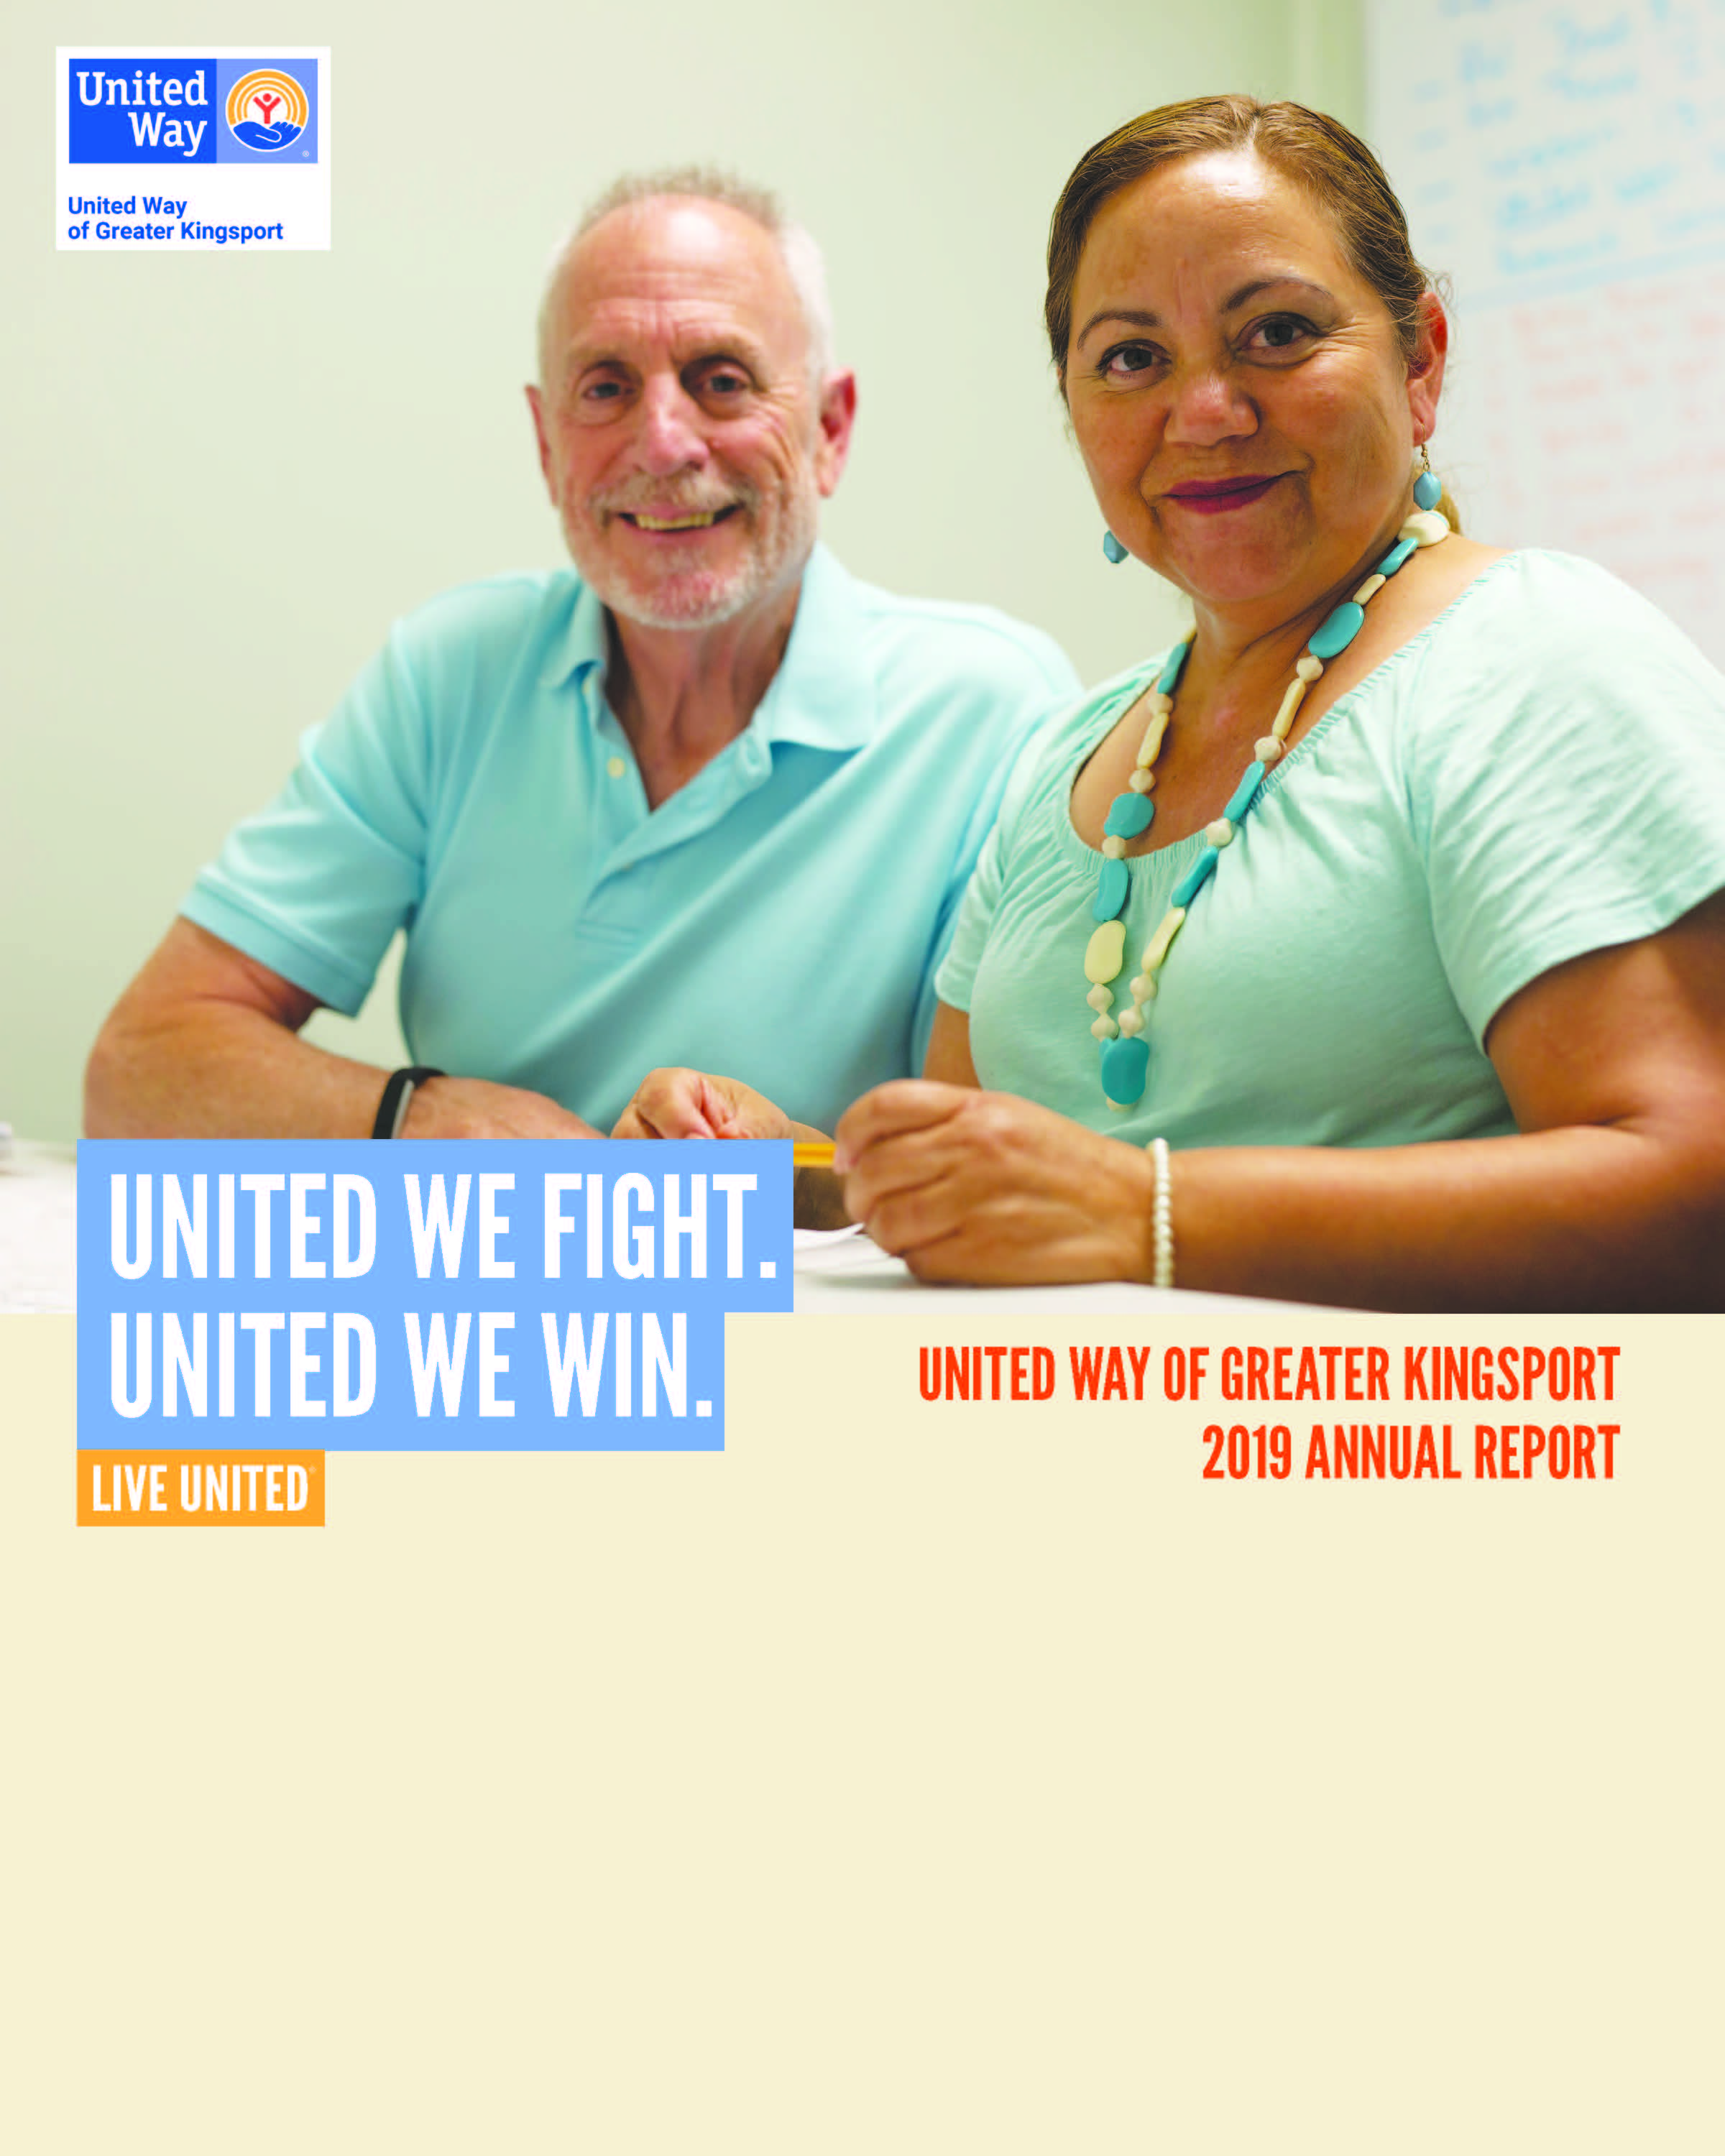 United Way of Greater Kingsport 2019 Annual Report